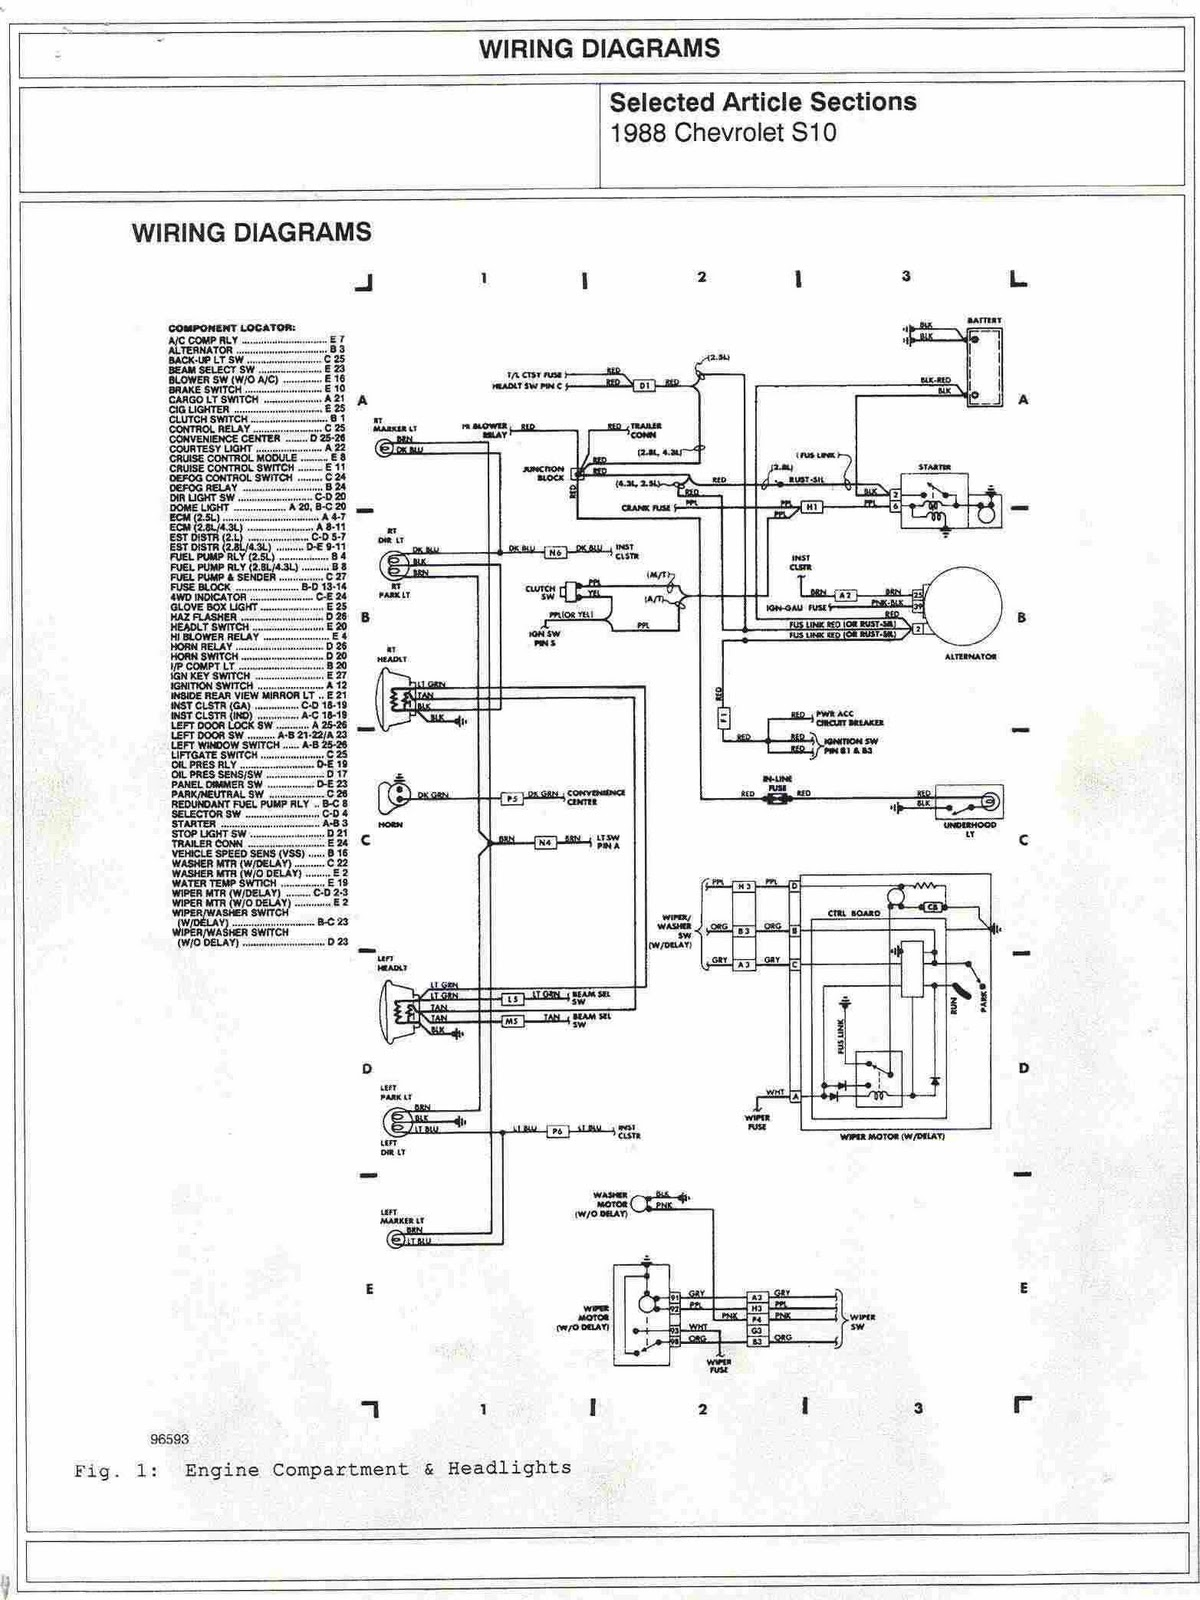 1988+Chevrolet+S10+Engine+Compartment+and+Headlights+Wiring+Diagrams 95 s10 wiring diagram 95 tahoe wiring diagram \u2022 wiring diagrams 1990 silverado wiring diagram at crackthecode.co